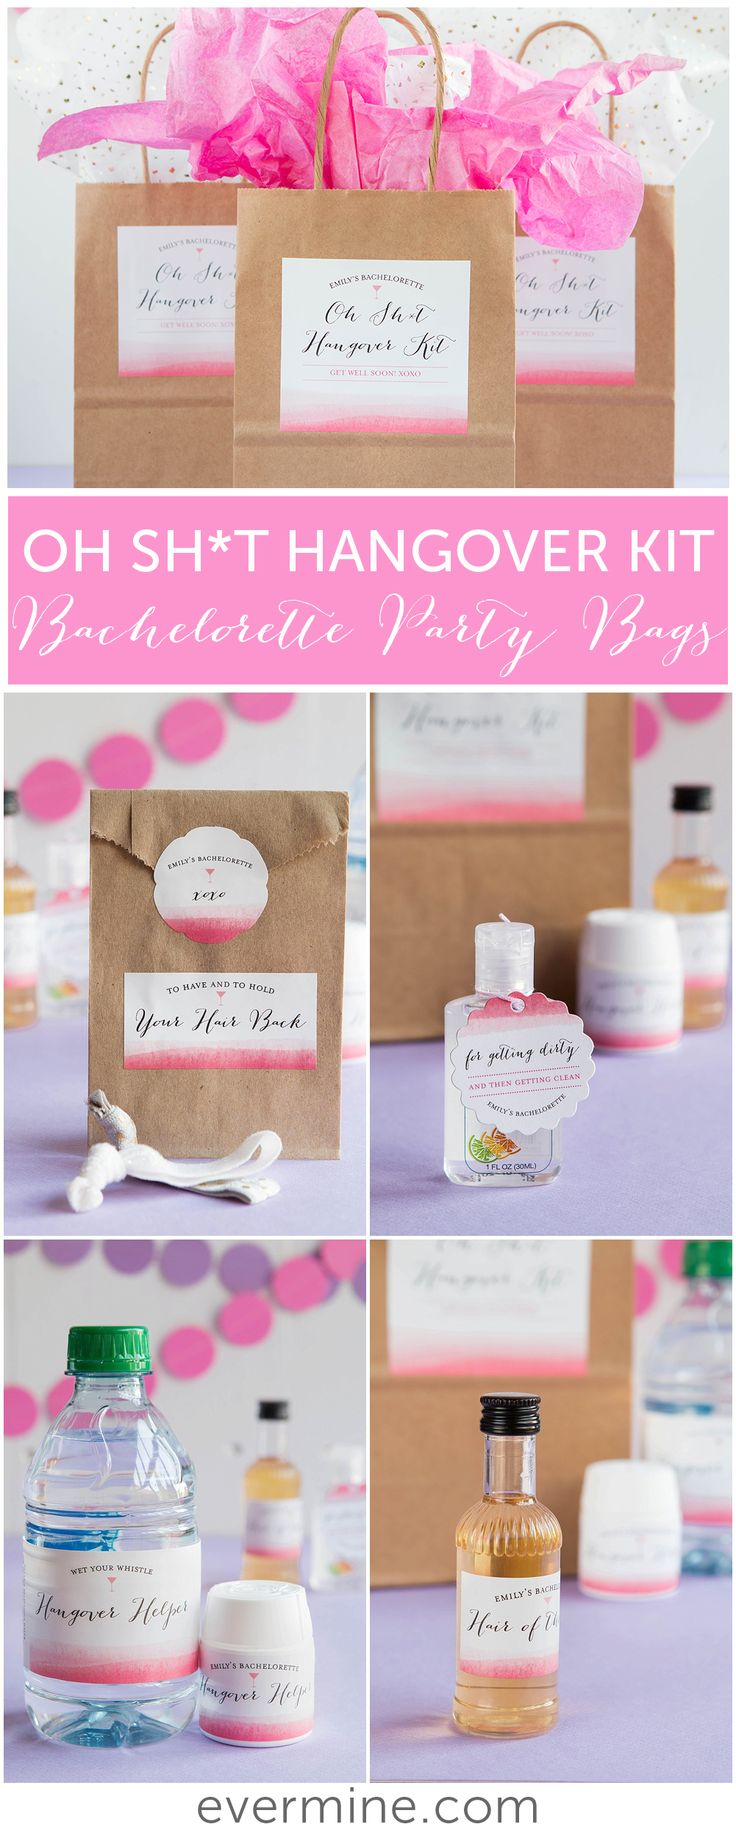 Bachelorette Party Favor Ideas | Oh Sh*t Hangover Kits | Evermine Weddings | evermine.com